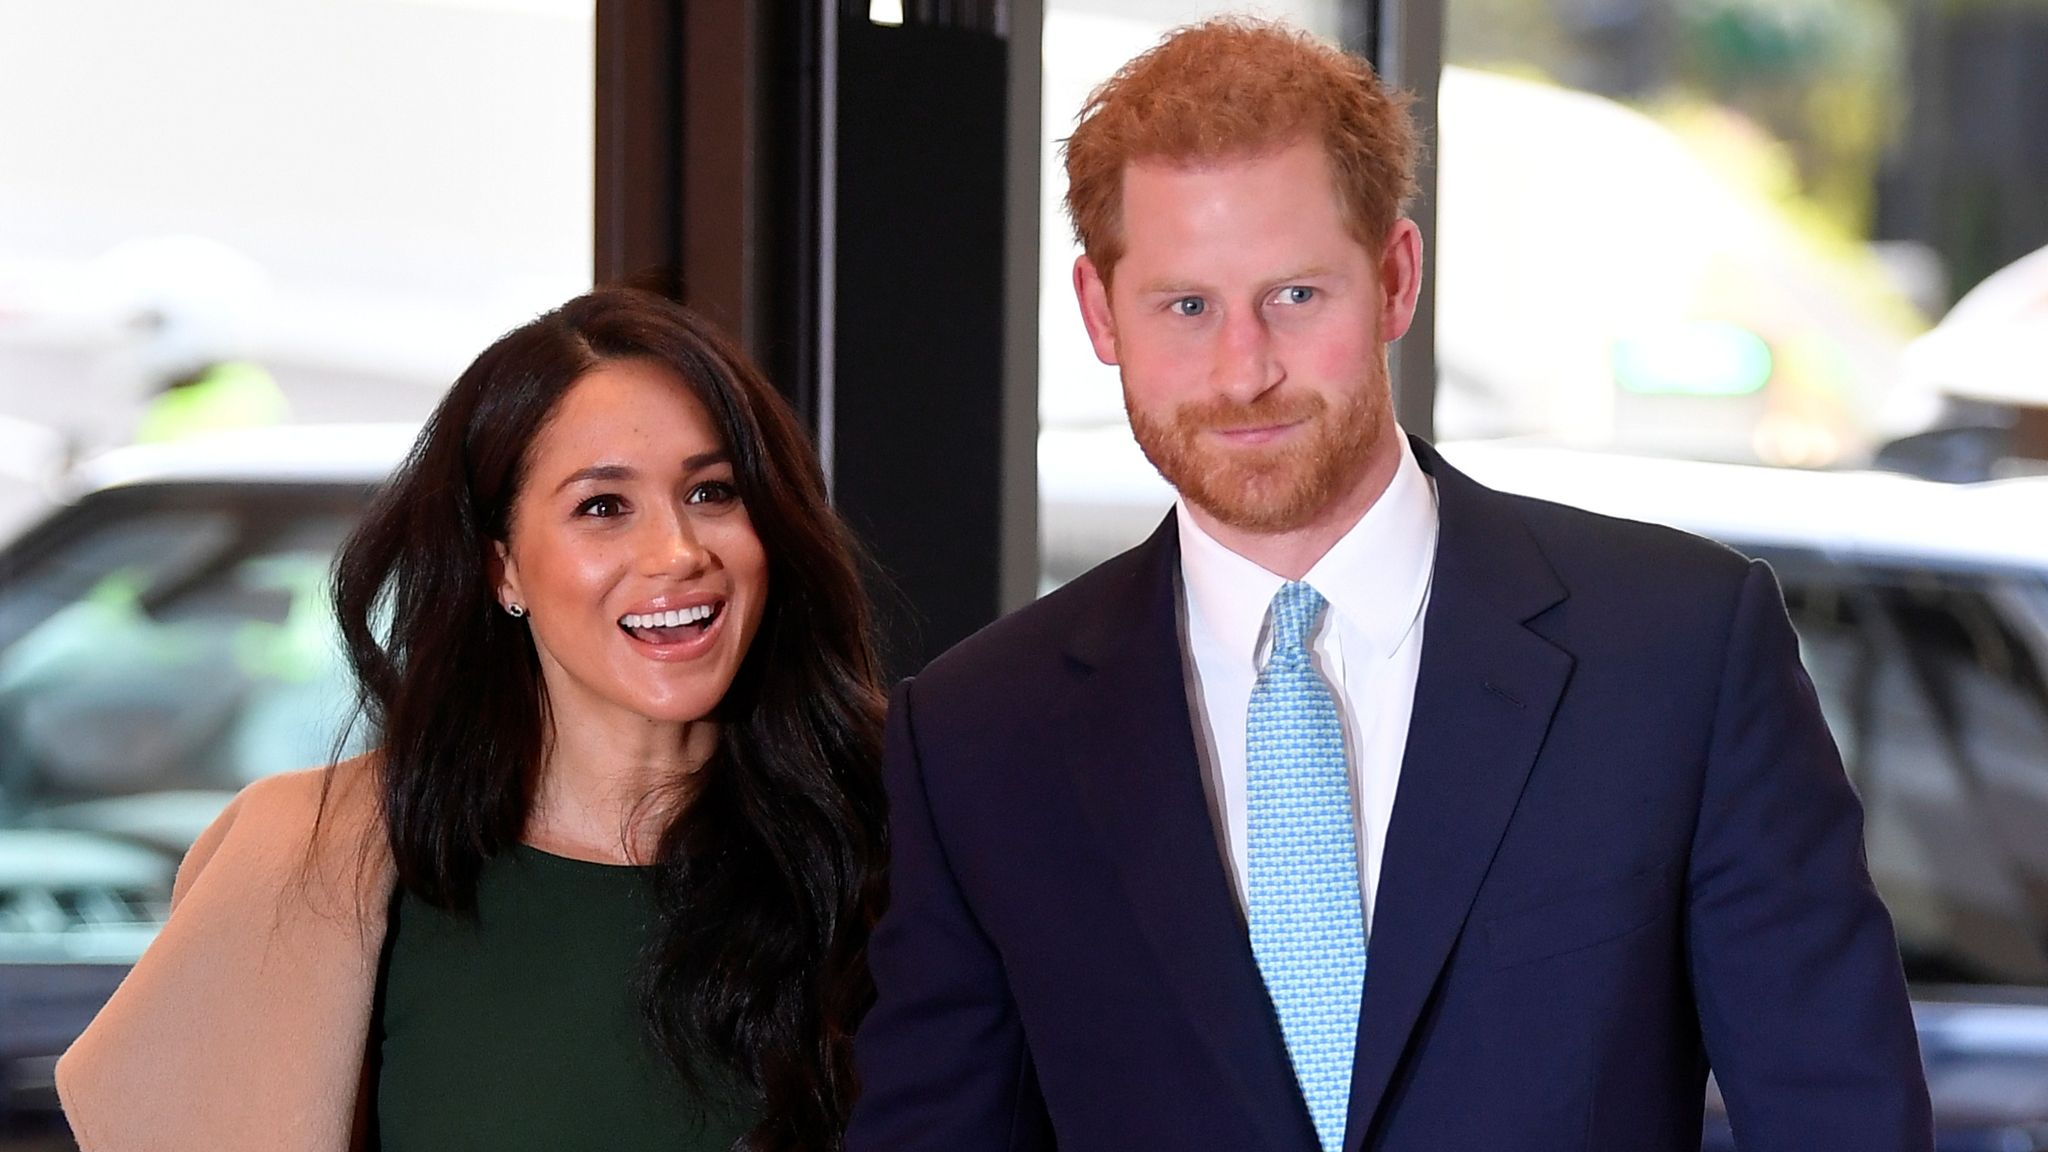 Harry and Meghan: Netflix boss interested in working with the Sussexes